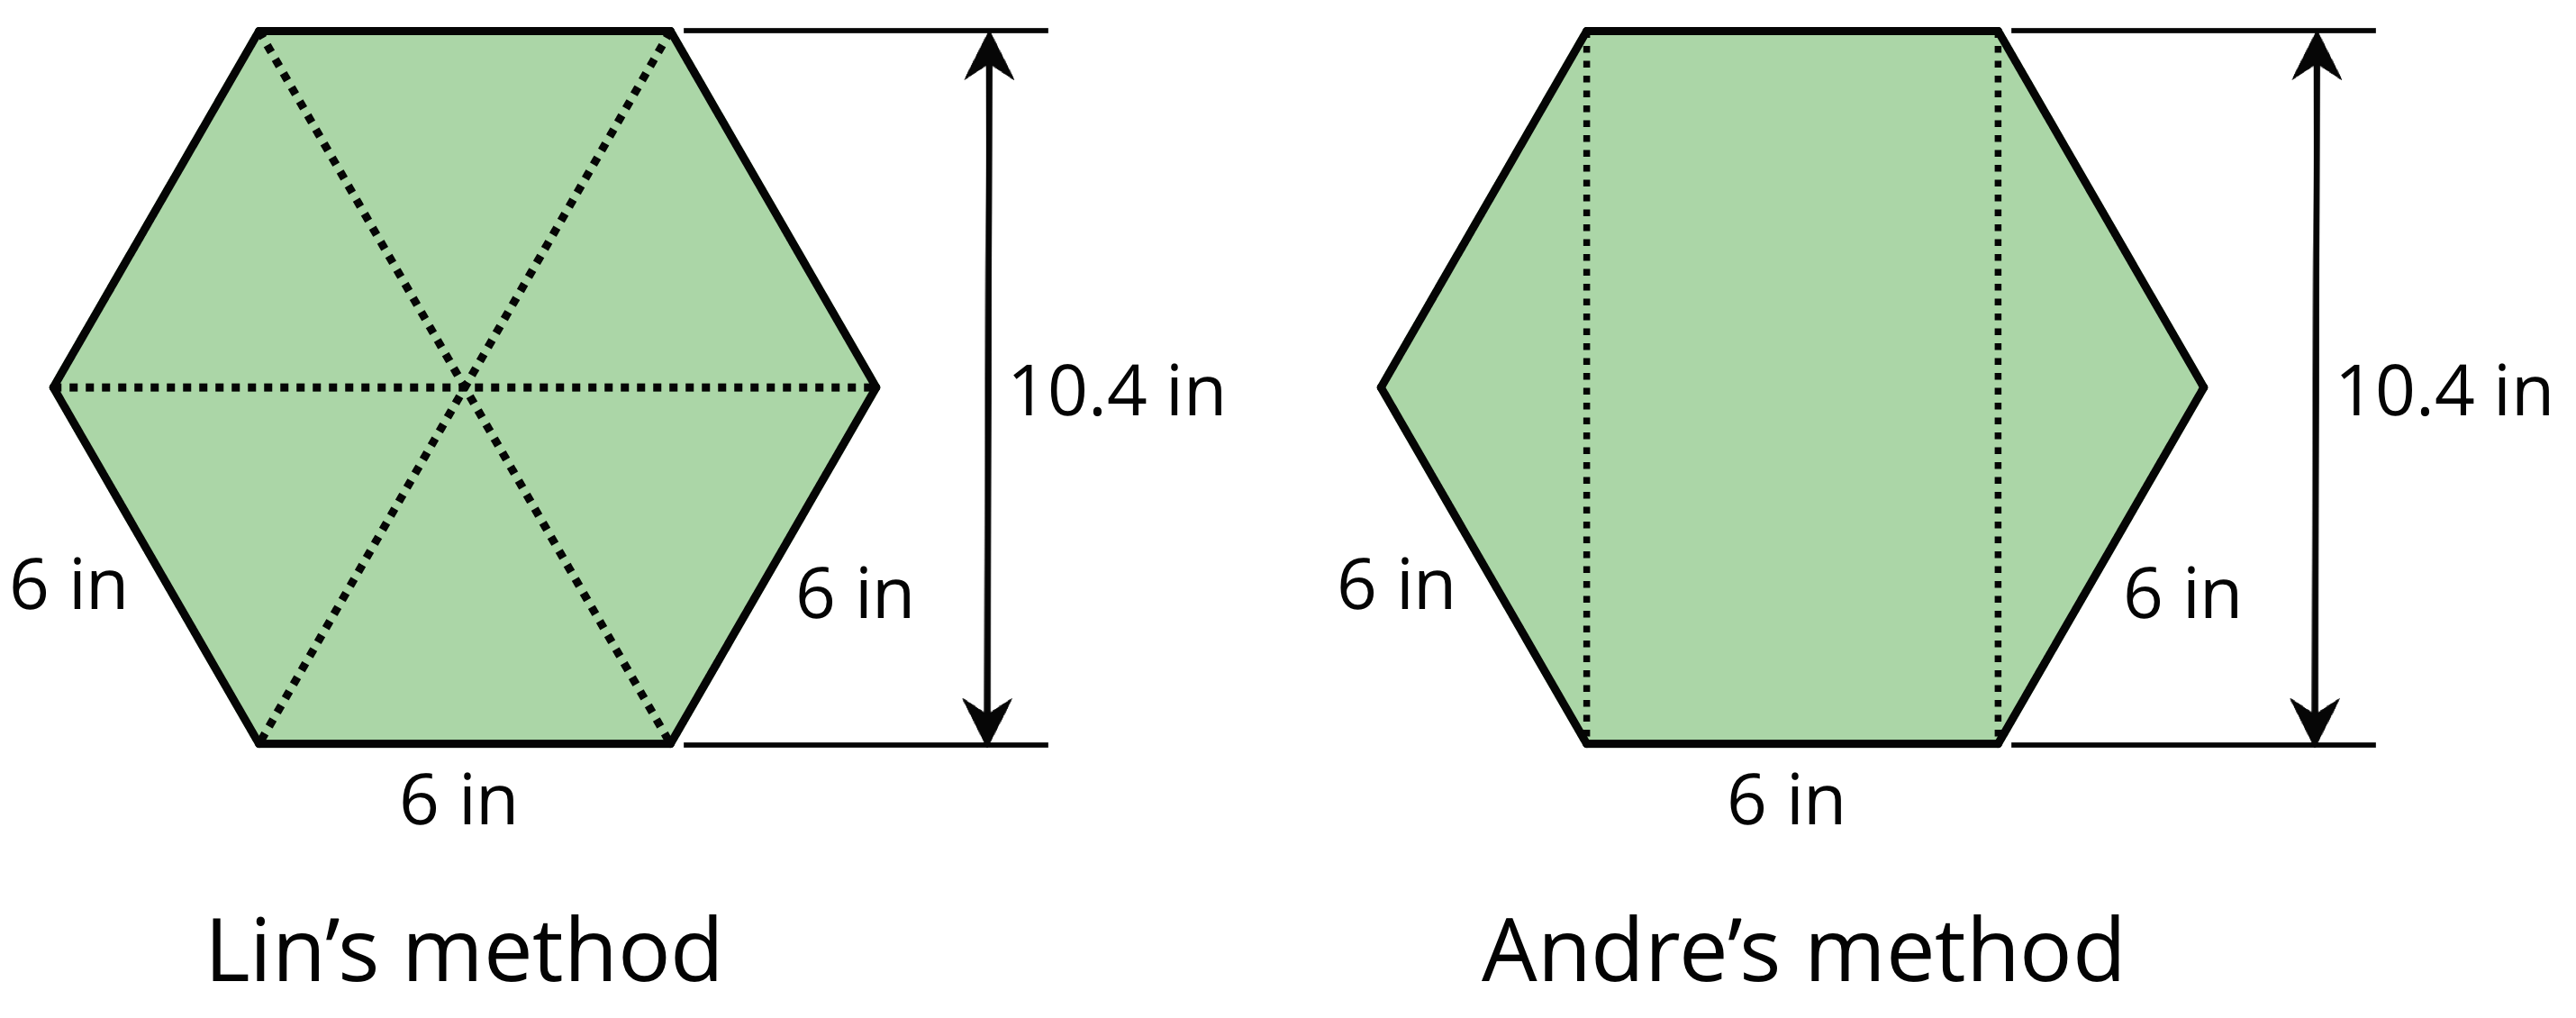 """Two identical hexagons labeled """"Lin's method"""" and """"Andre's method"""".  Each hexagon has three sides labeled 6 inches and an arrow indicating total height labeled 10.4 inches. """"Lin's method"""" is divided into six equal triangles, and Andre's method is decomposed into a rectangle made of lines extending from one side to the opposite side, with a triangle on either side of the rectangle."""